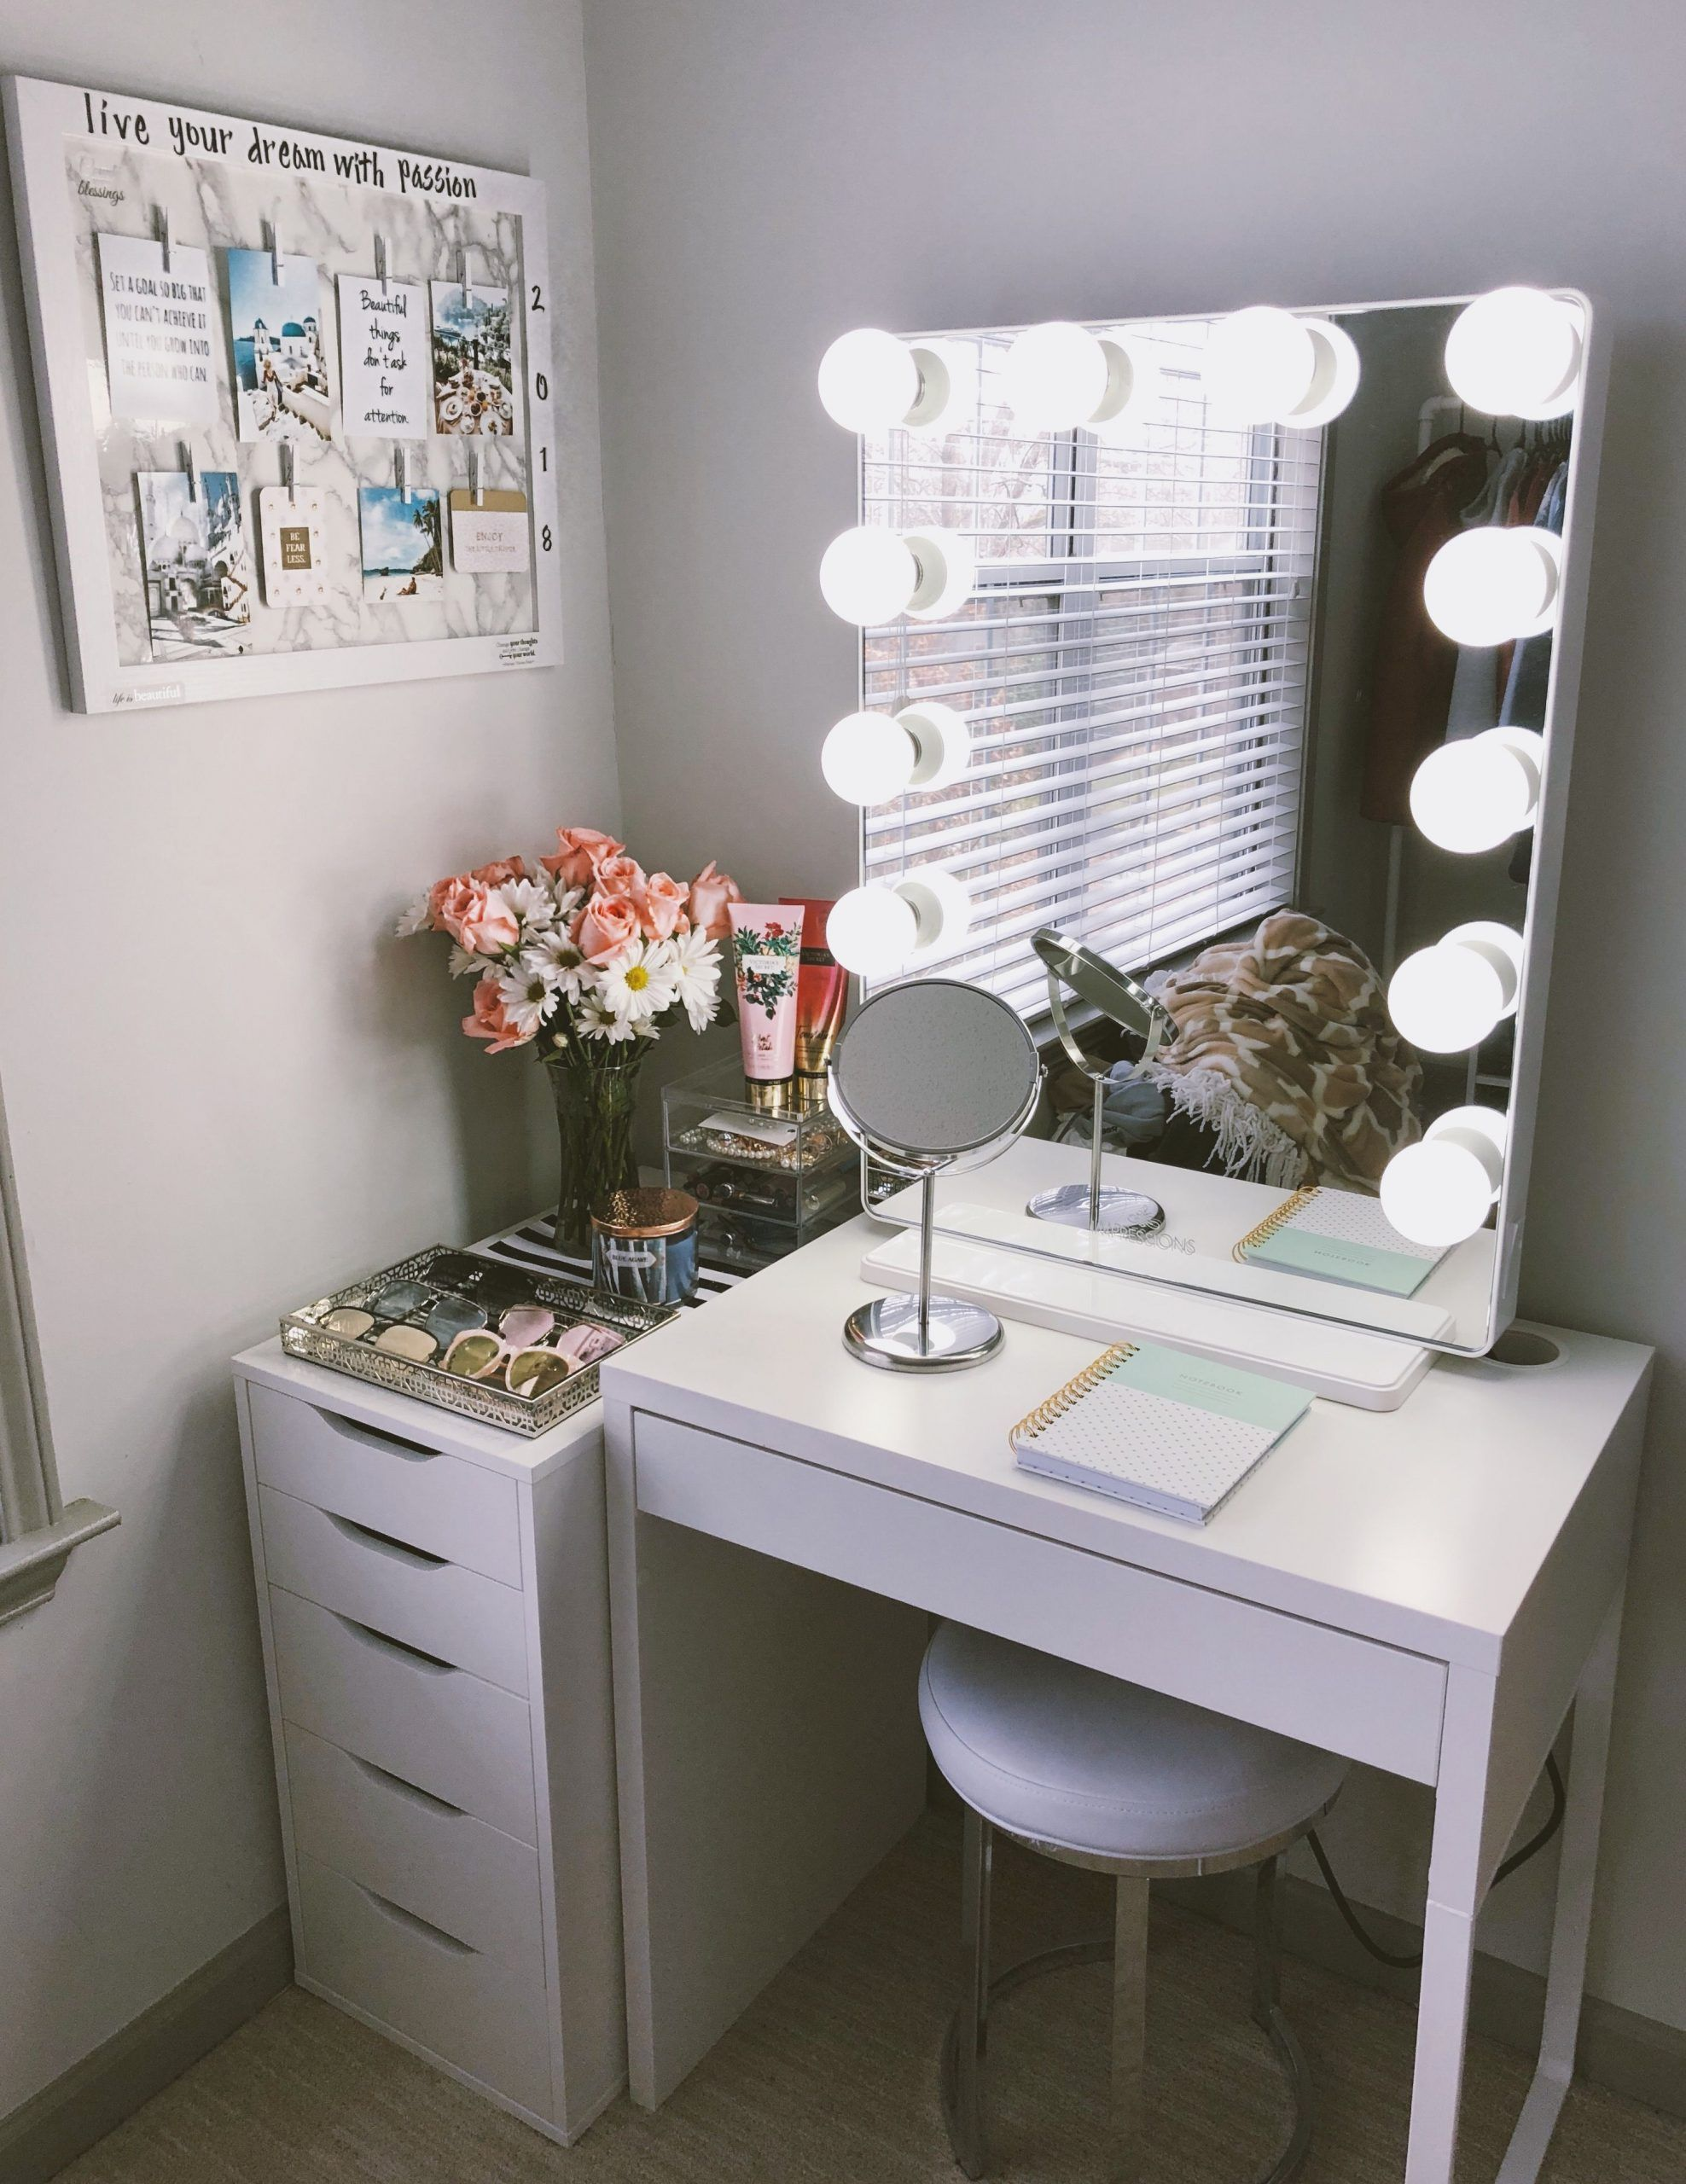 Cute Vanity Set Up Perfect For Small Places I Purchased The Mirror From Impress Cute Impress Mirror Perfe In 2020 Stylish Bedroom Vanity Set Up Room Inspiration